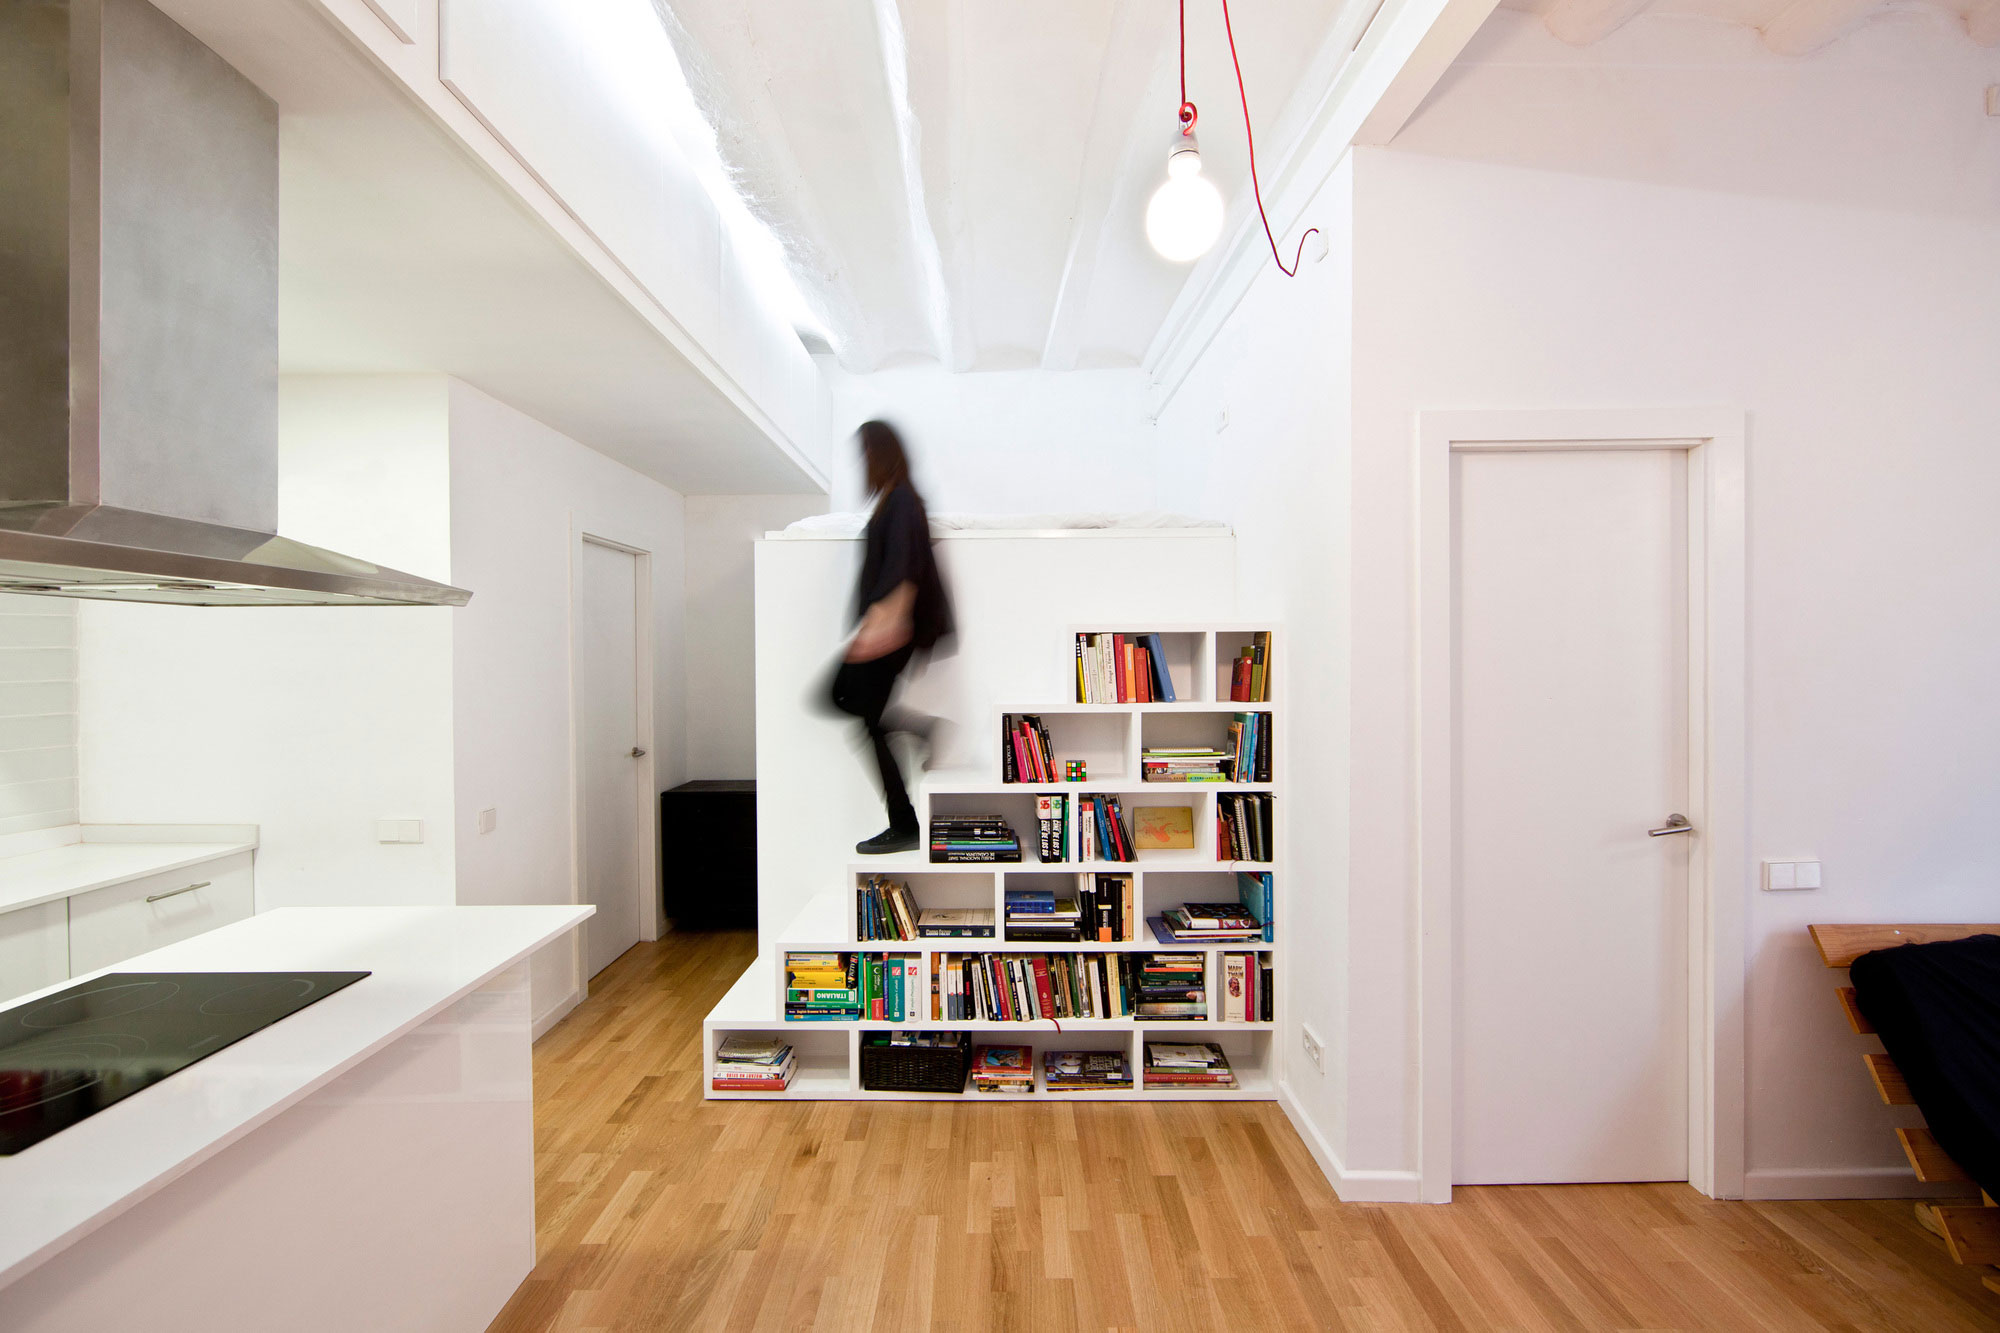 Interior-Design-For-Compact-Apartment-2 Examples Of Interior Design For